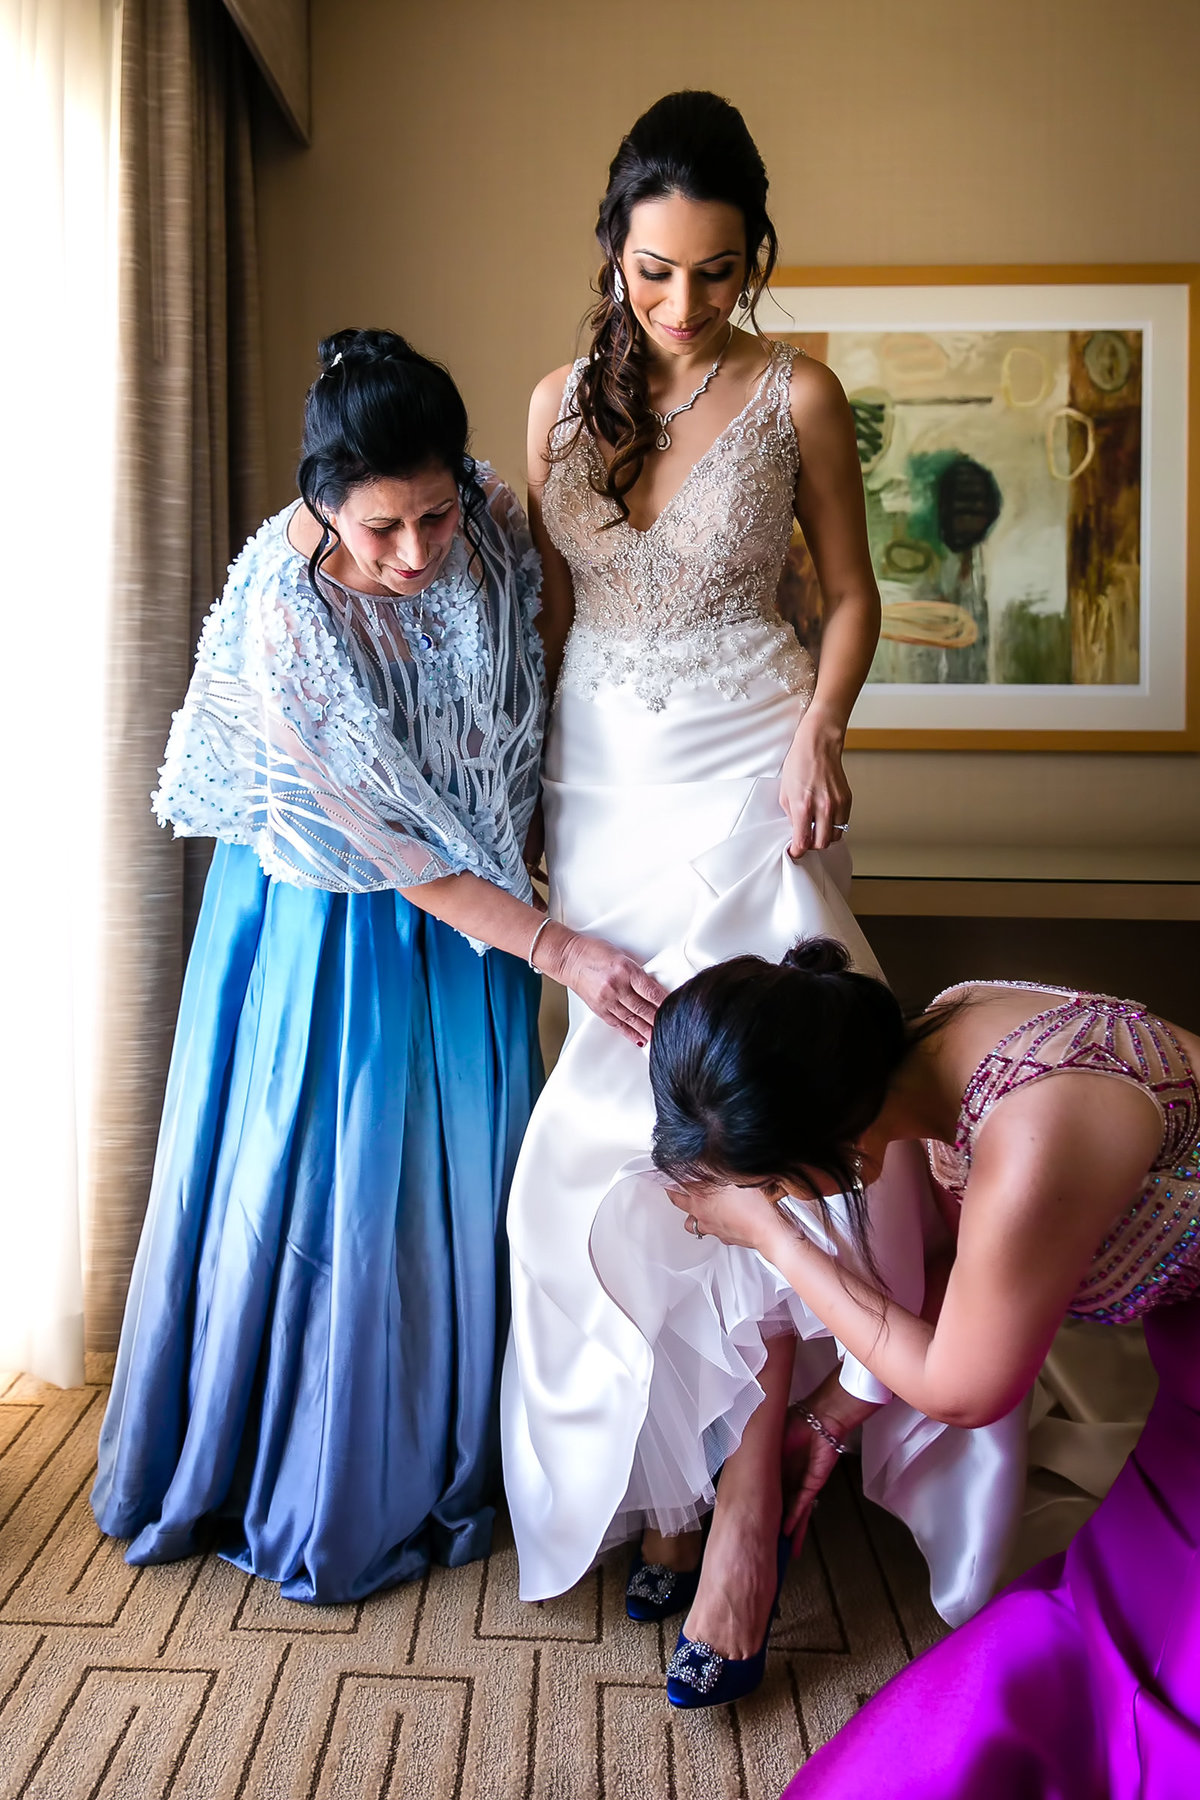 032-hotel-irvine-wedding-photos-sugandha-farzan